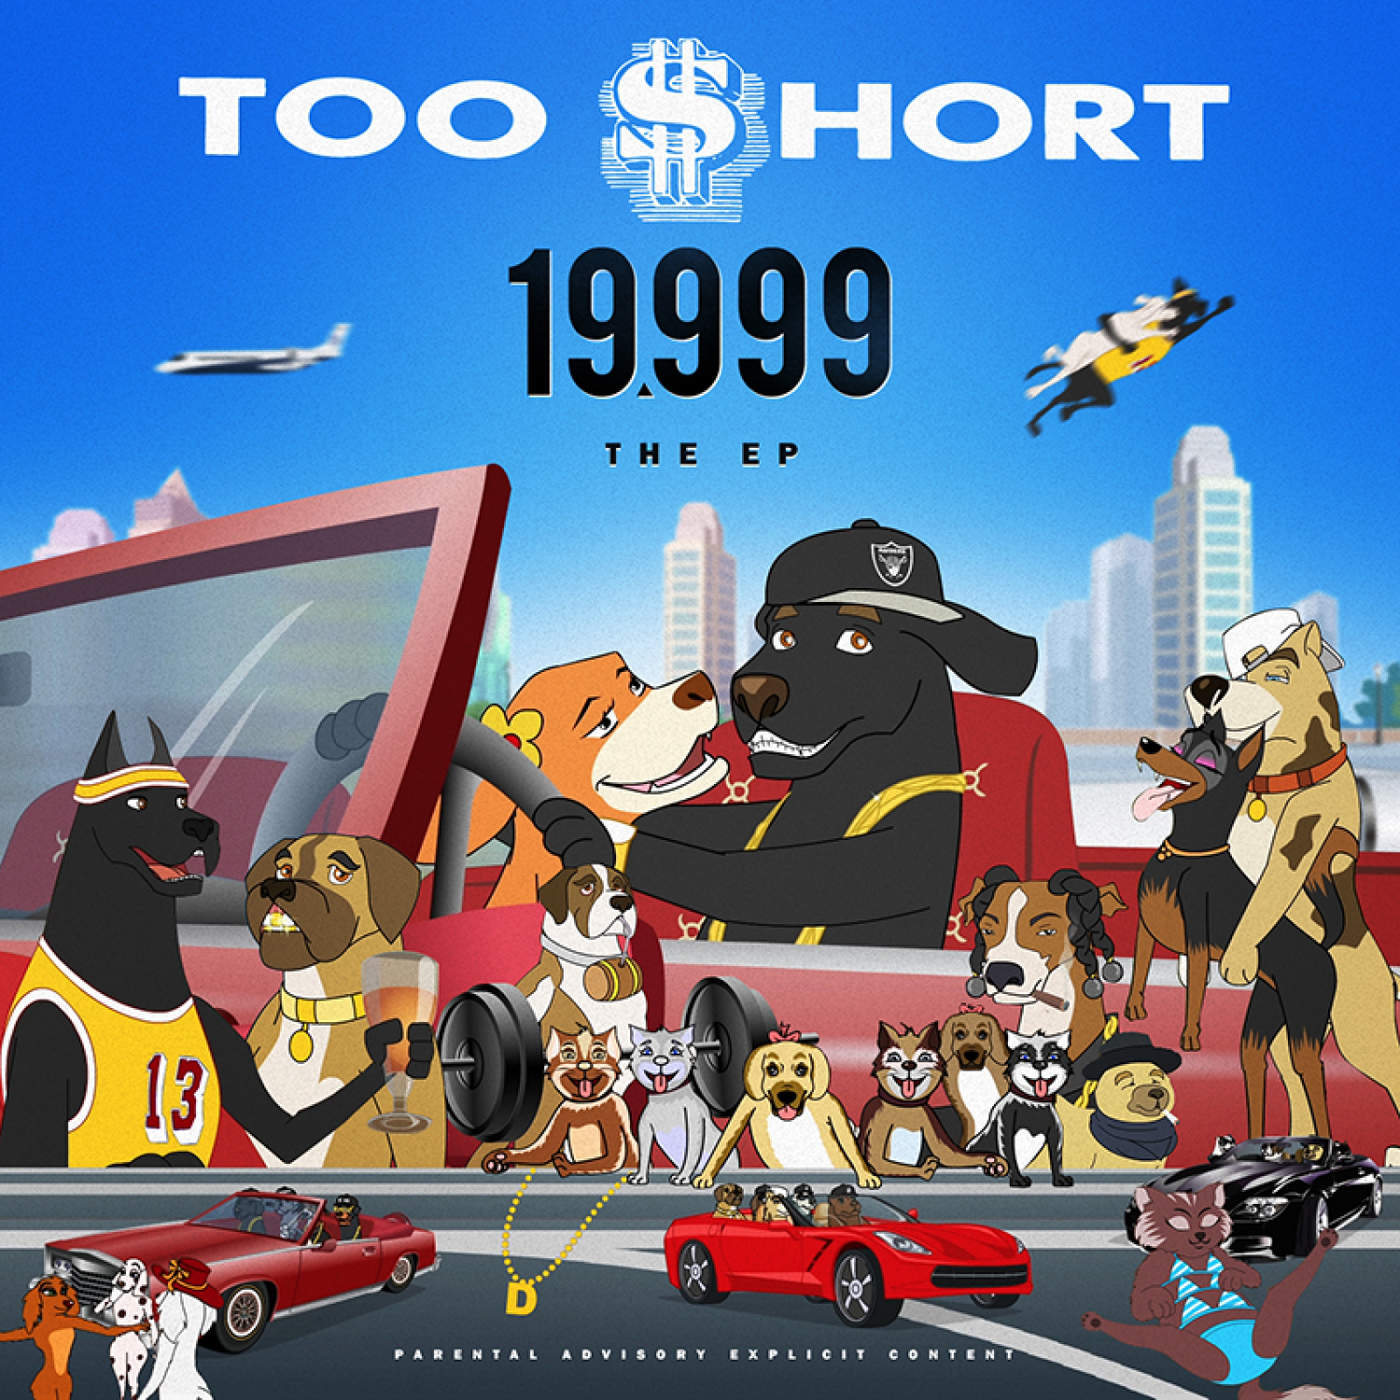 Too $hort - 19,999 - EP Cover